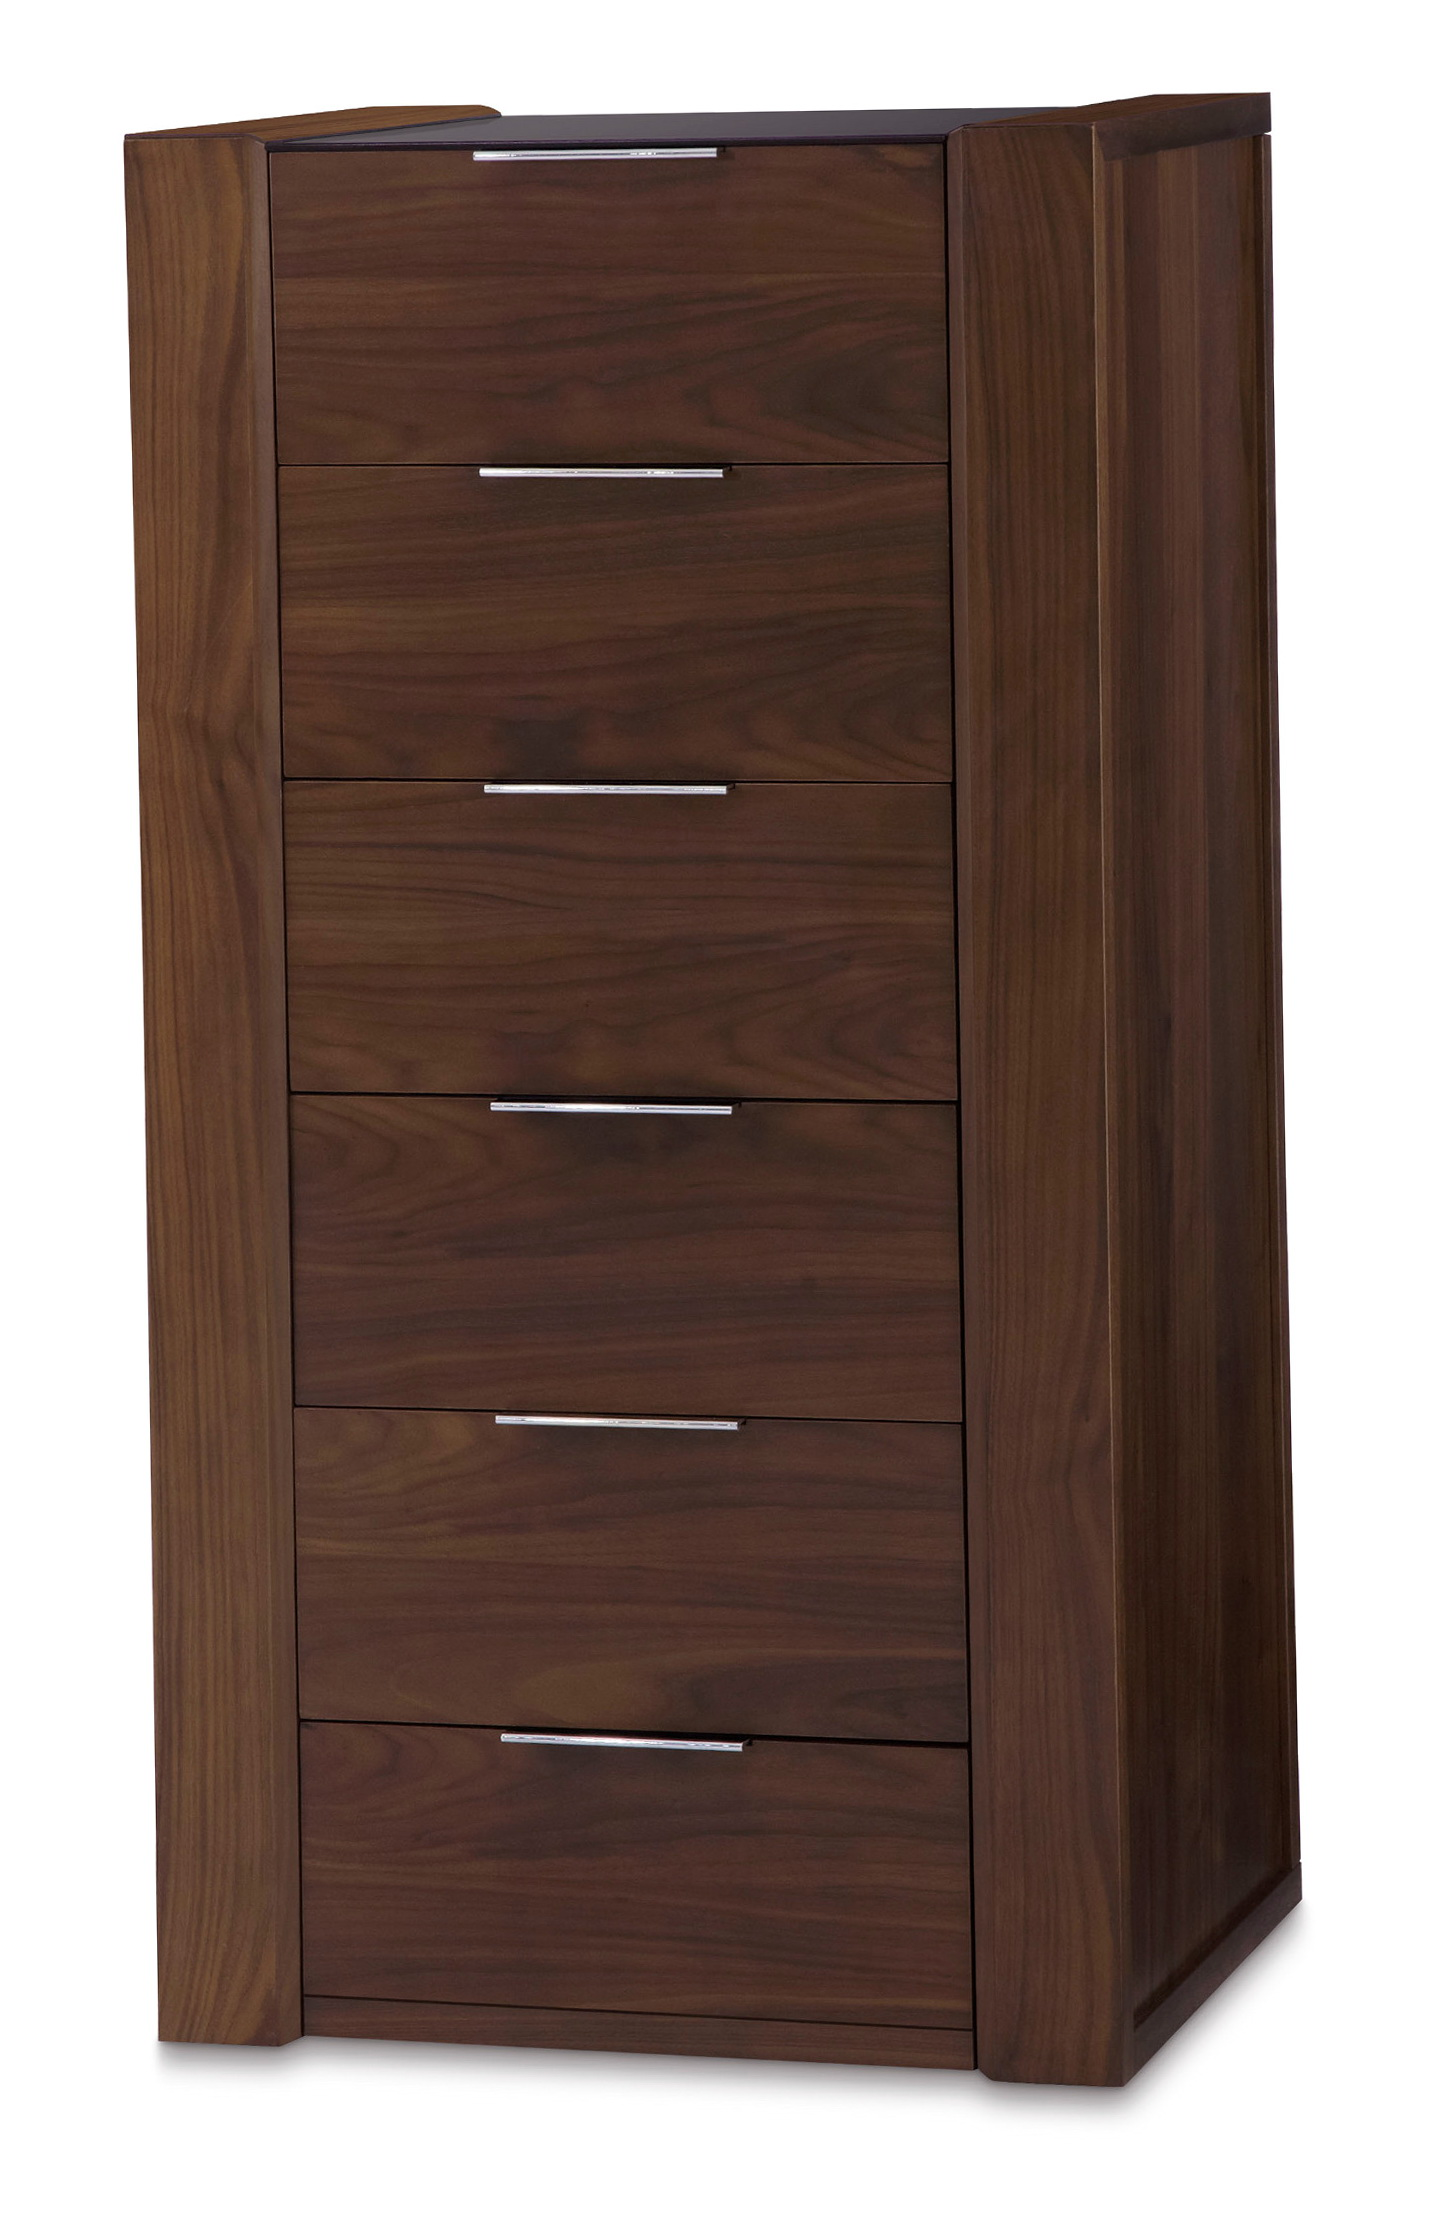 Six Drawer Dresser Tall Dresser 17390 Home Design Ideas